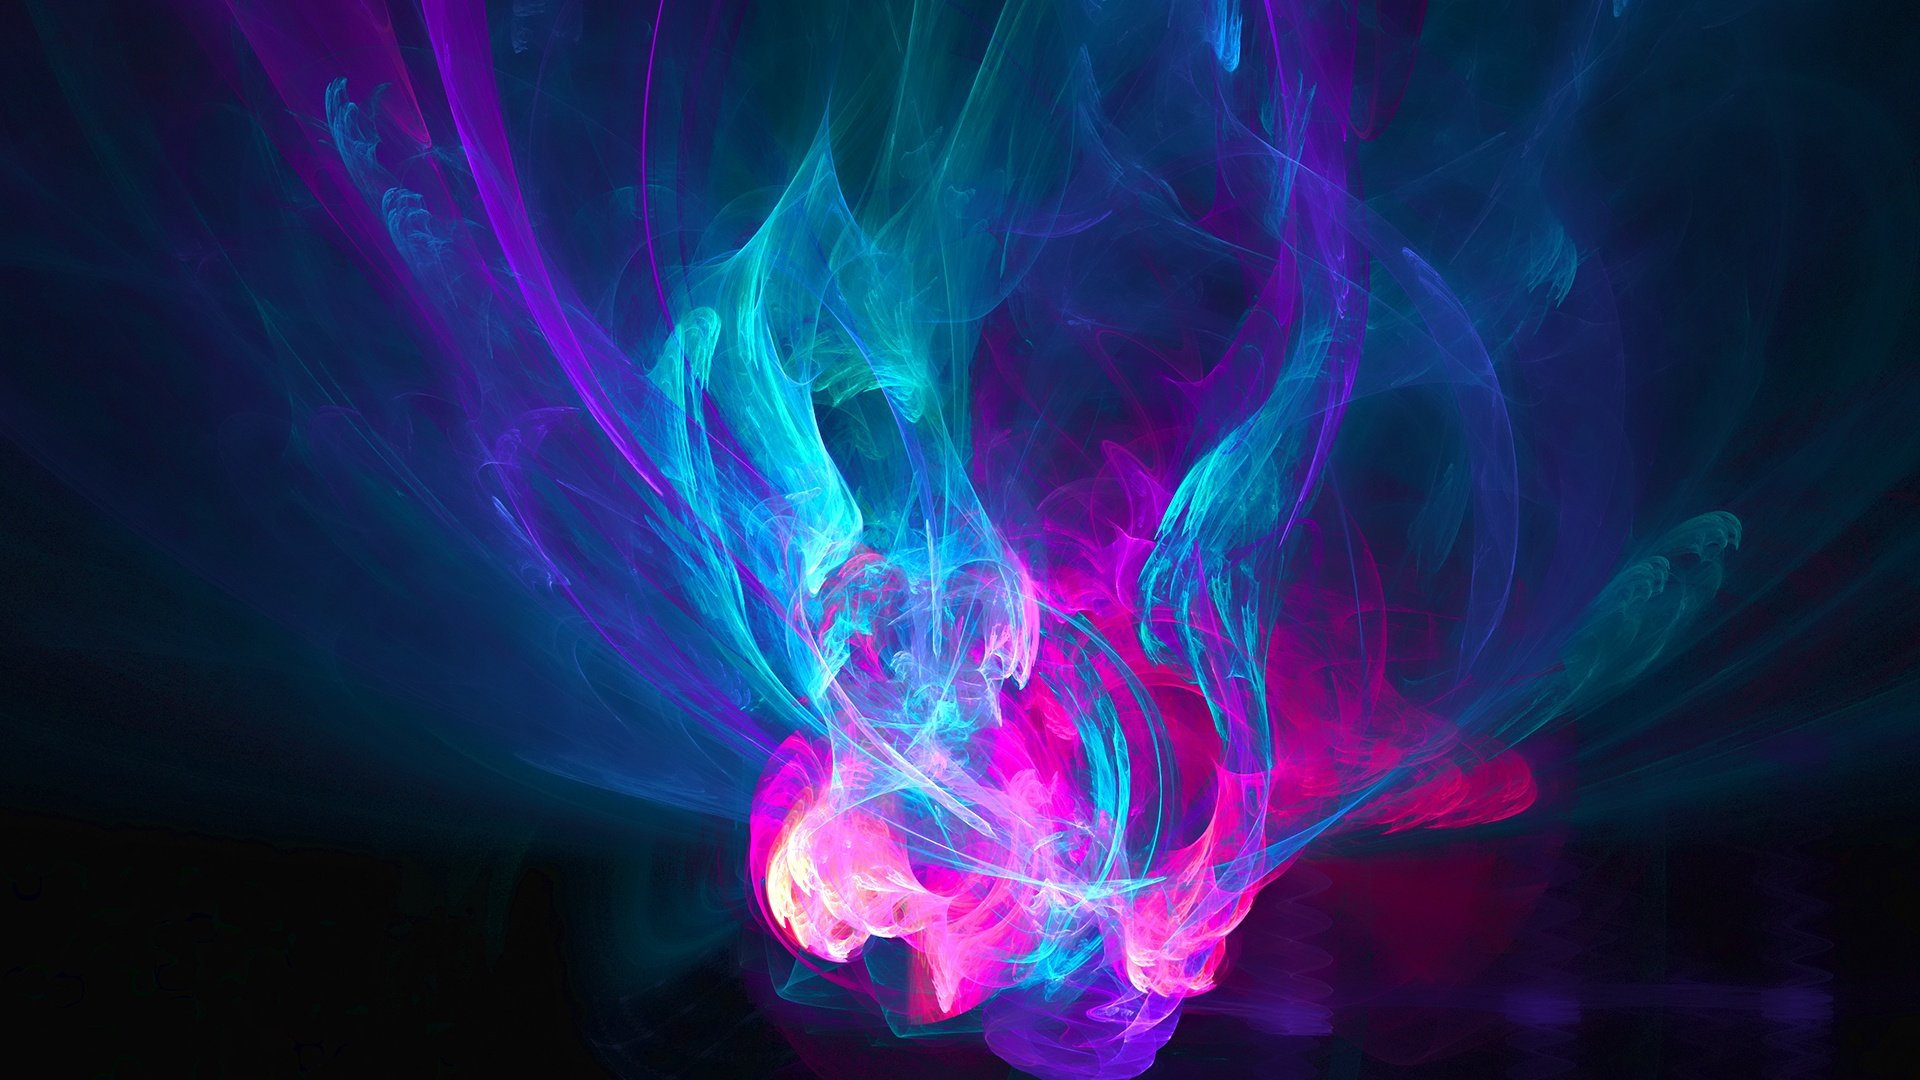 31 ultra colorful and beautiful qhd and hd wallpapers for your devices